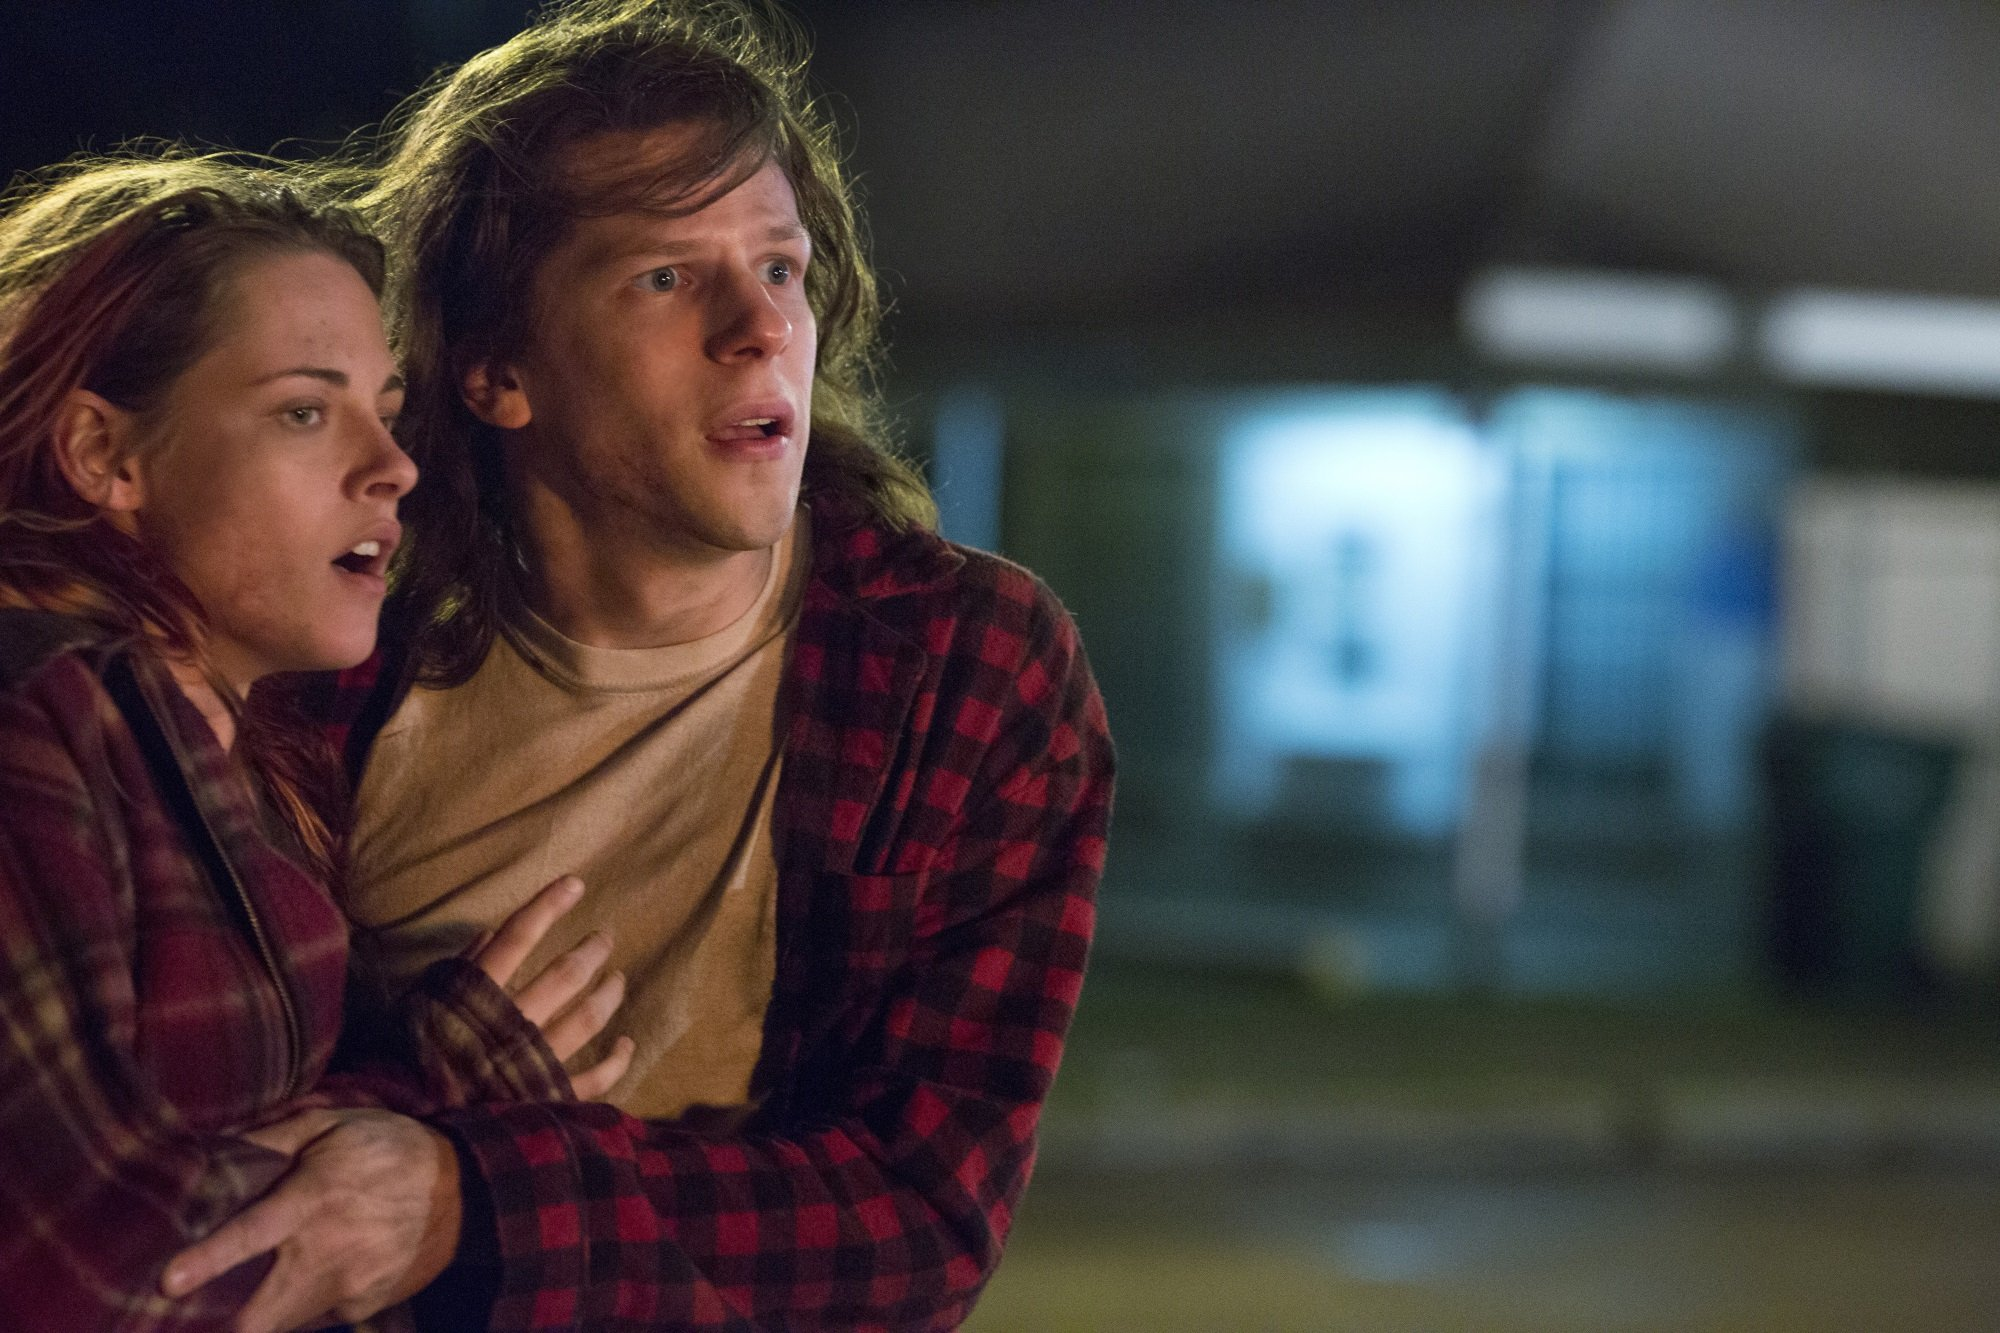 Kristen Stewart and Jesse Eisenberg in 'American Ultra.' Photo credit: Lionsgate